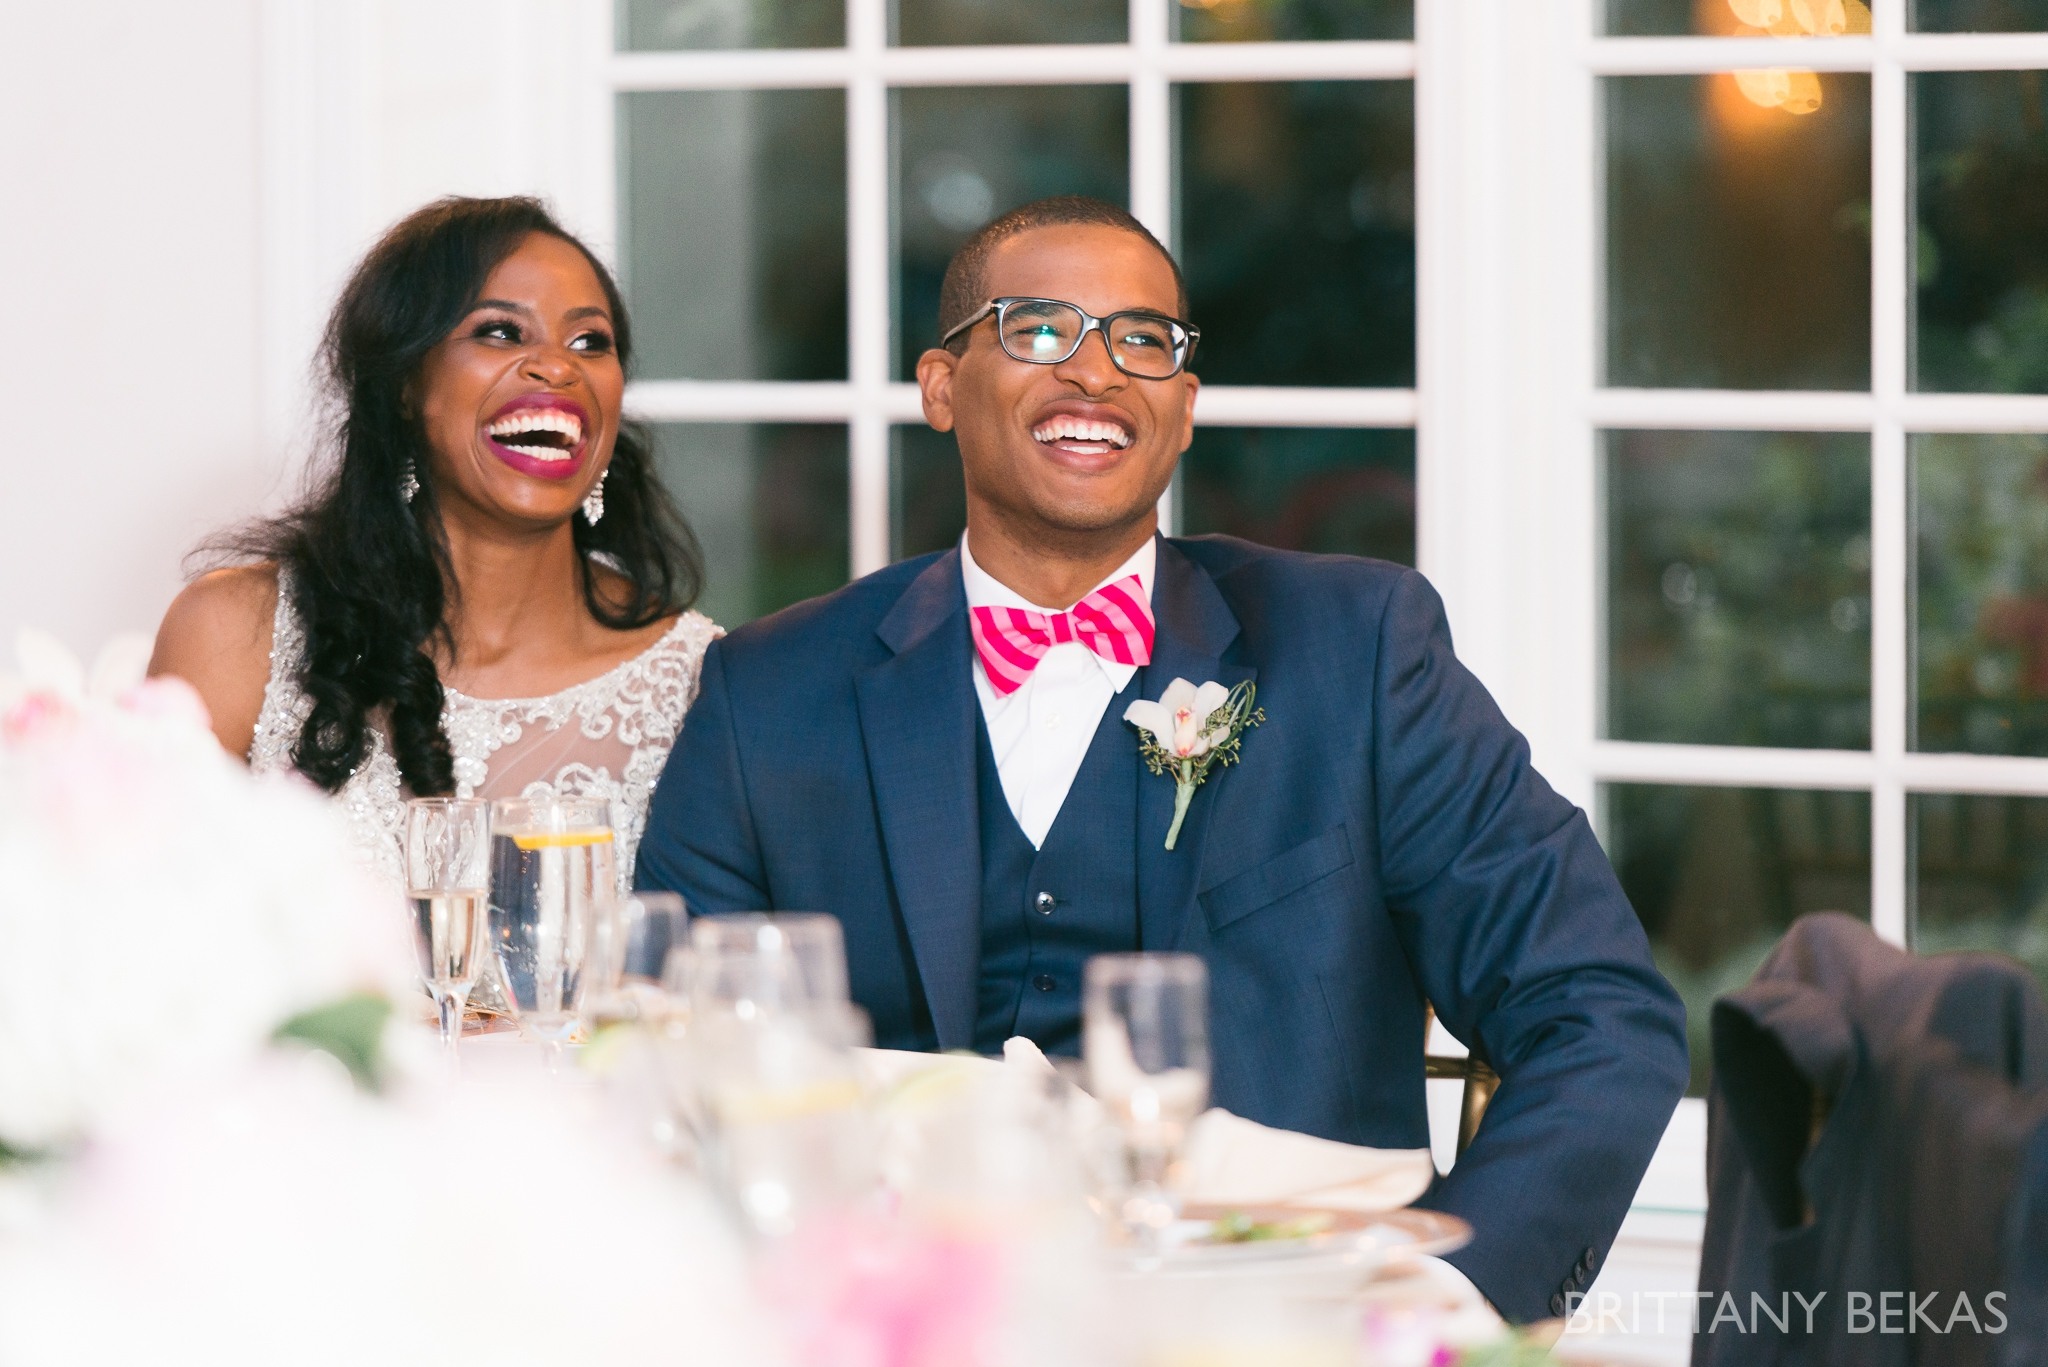 Patrick Haley Mansion Wedding - Brittany Bekas Photography_0036